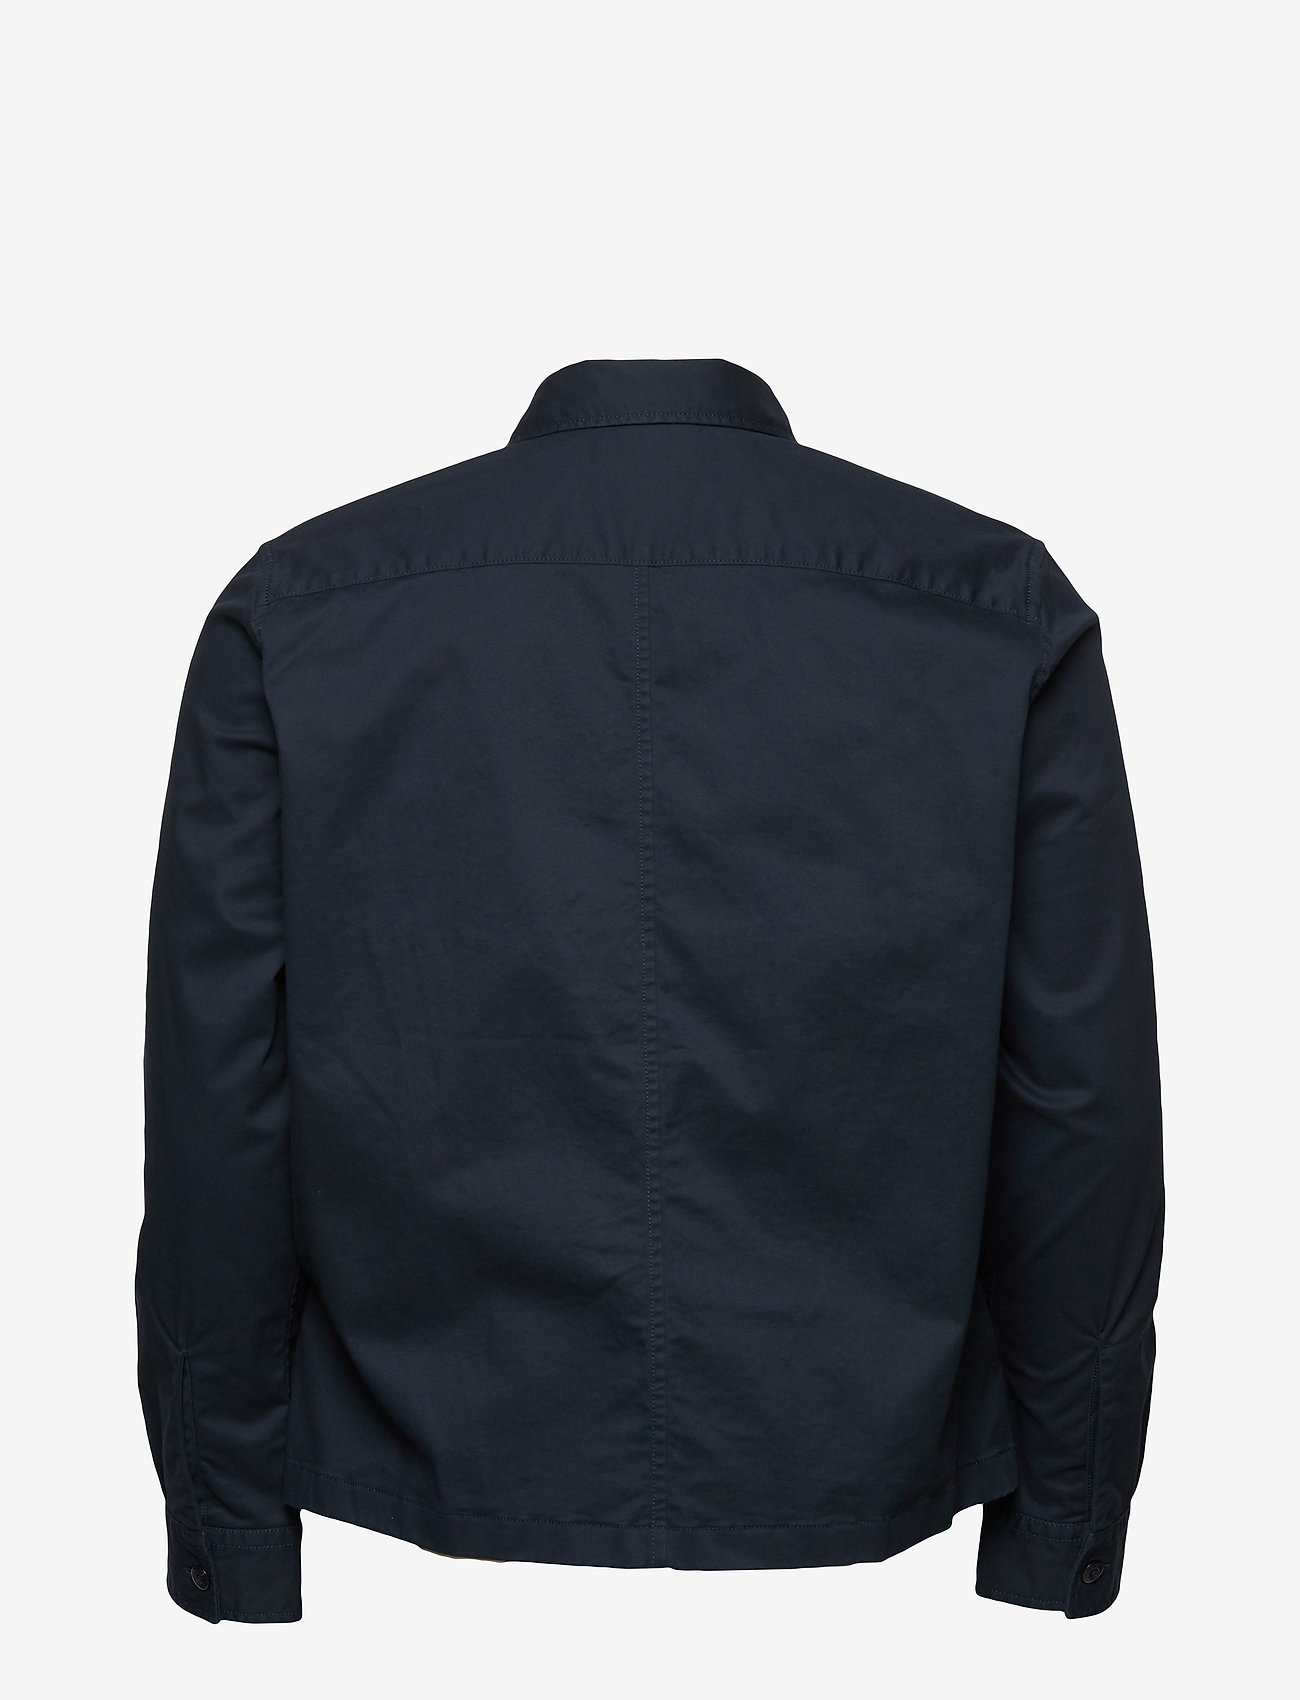 Marc O'Polo Overshirt long sleeve two patched- Vestes et manteaux zIL5EMsA SFUdA GyODJIoQ